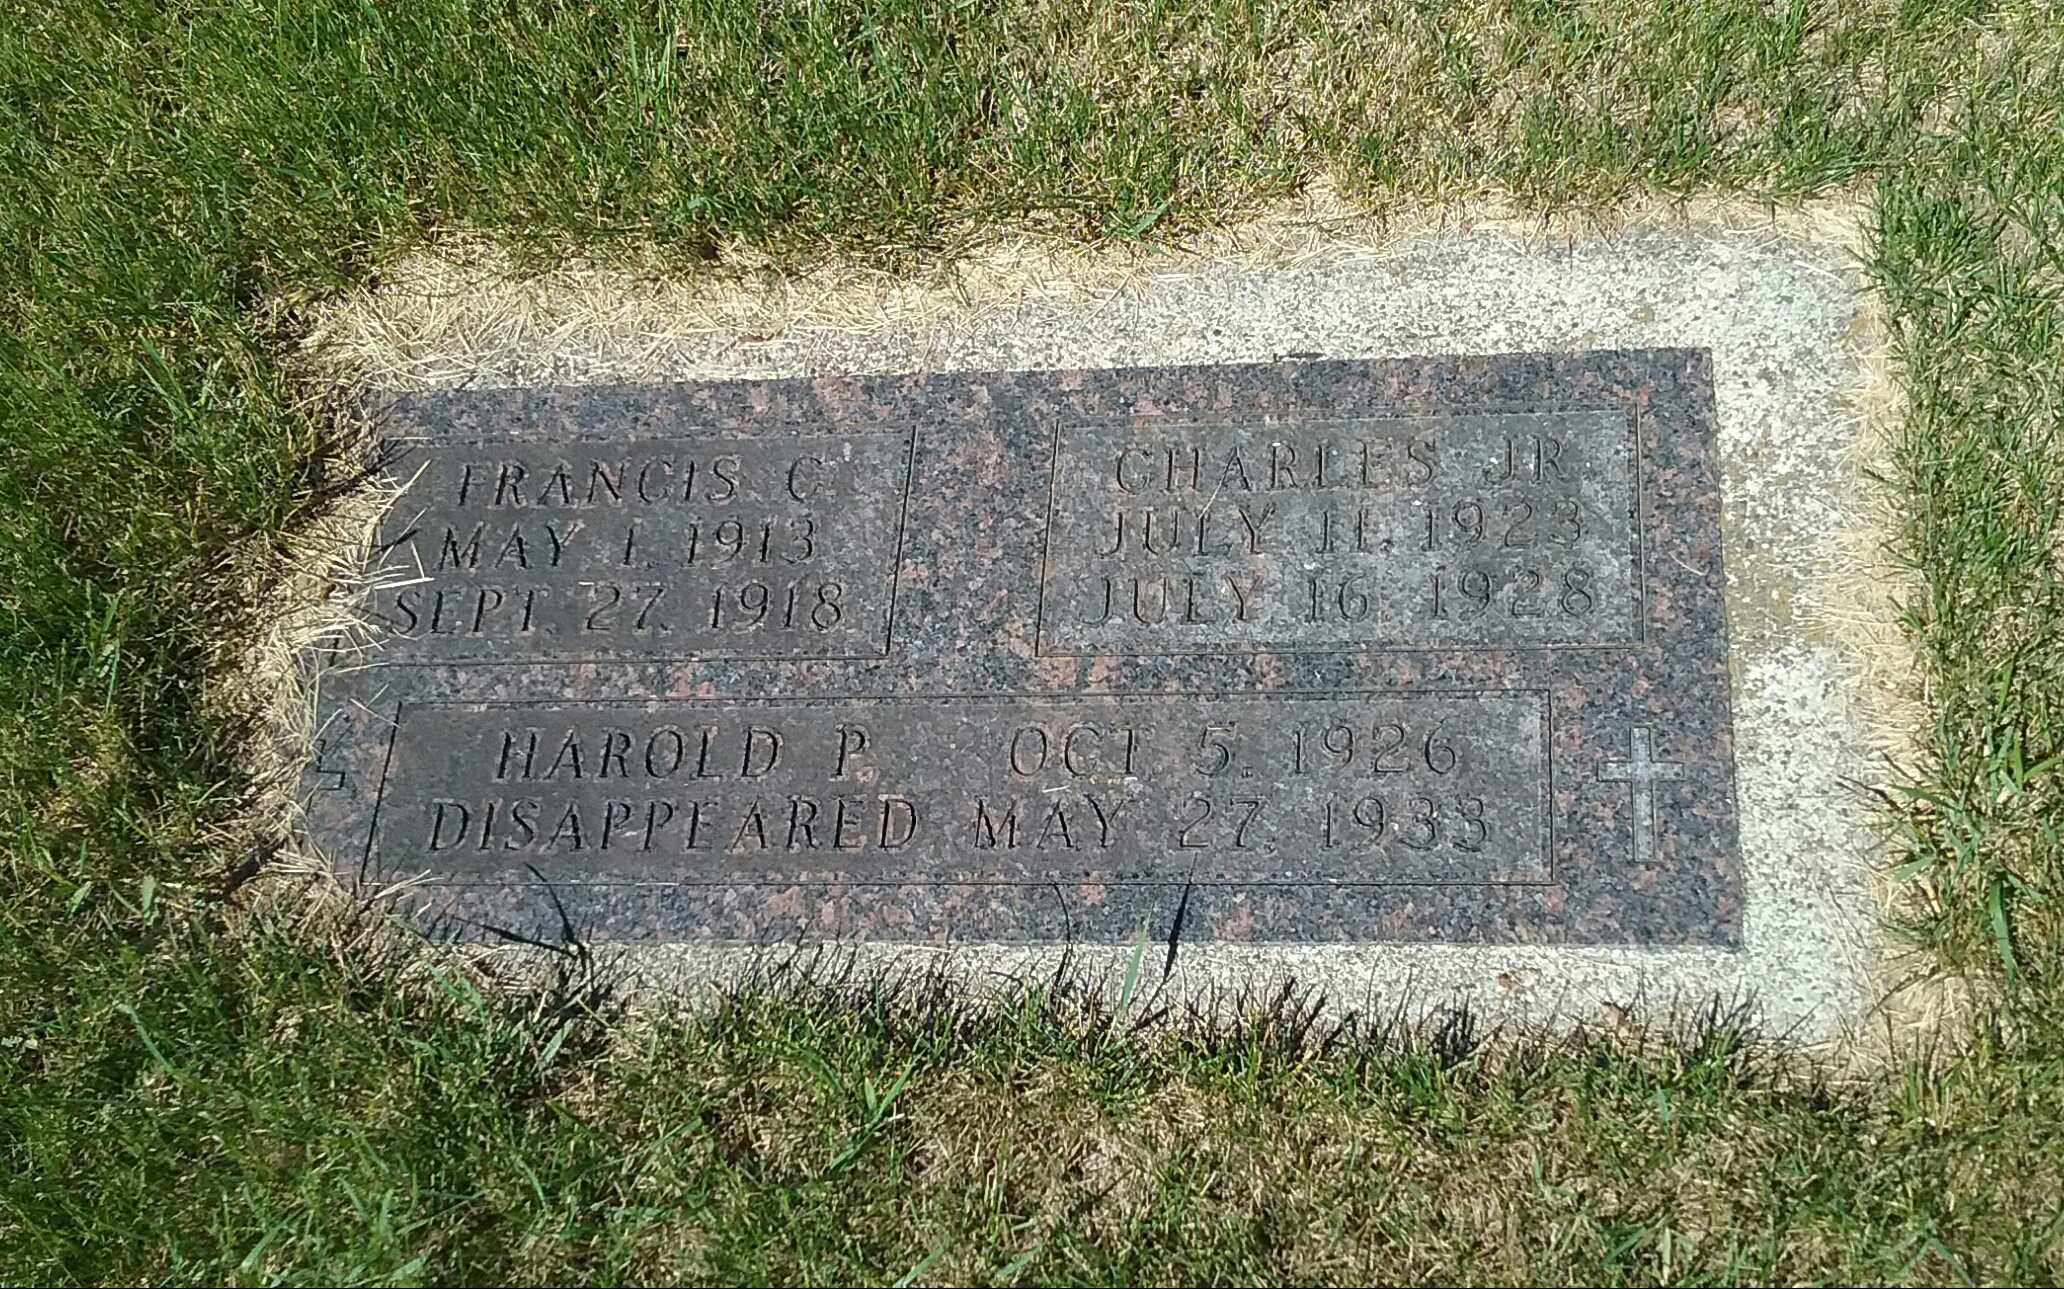 Grave marker for Frances C. and Charles Tidd, Jr., with a memorial to Harold P. Tidd, who disappeared May 27, 1933, located in Calvary Cemetery, Little Falls, MN. Photo by Mary Warner, 2017.